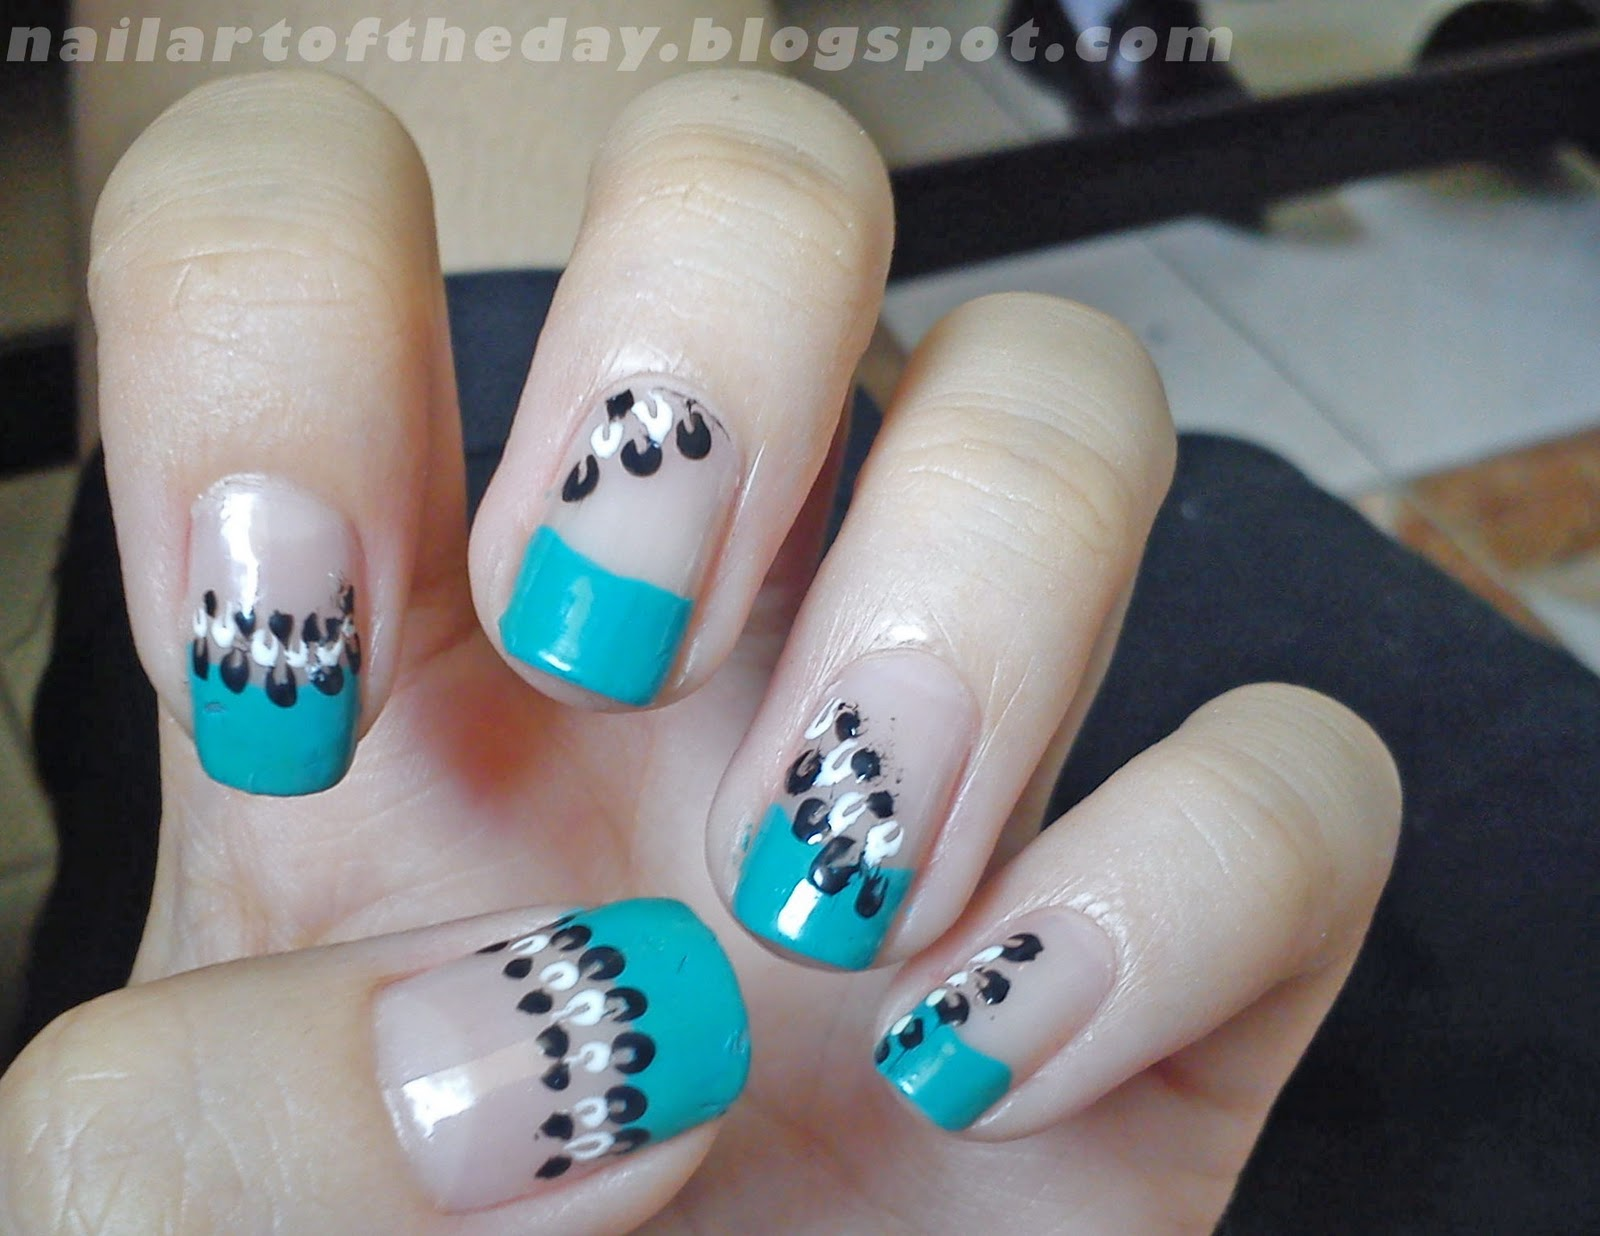 Simple Nail Art Designs Images : My nail art a week ago just very simple design and here it